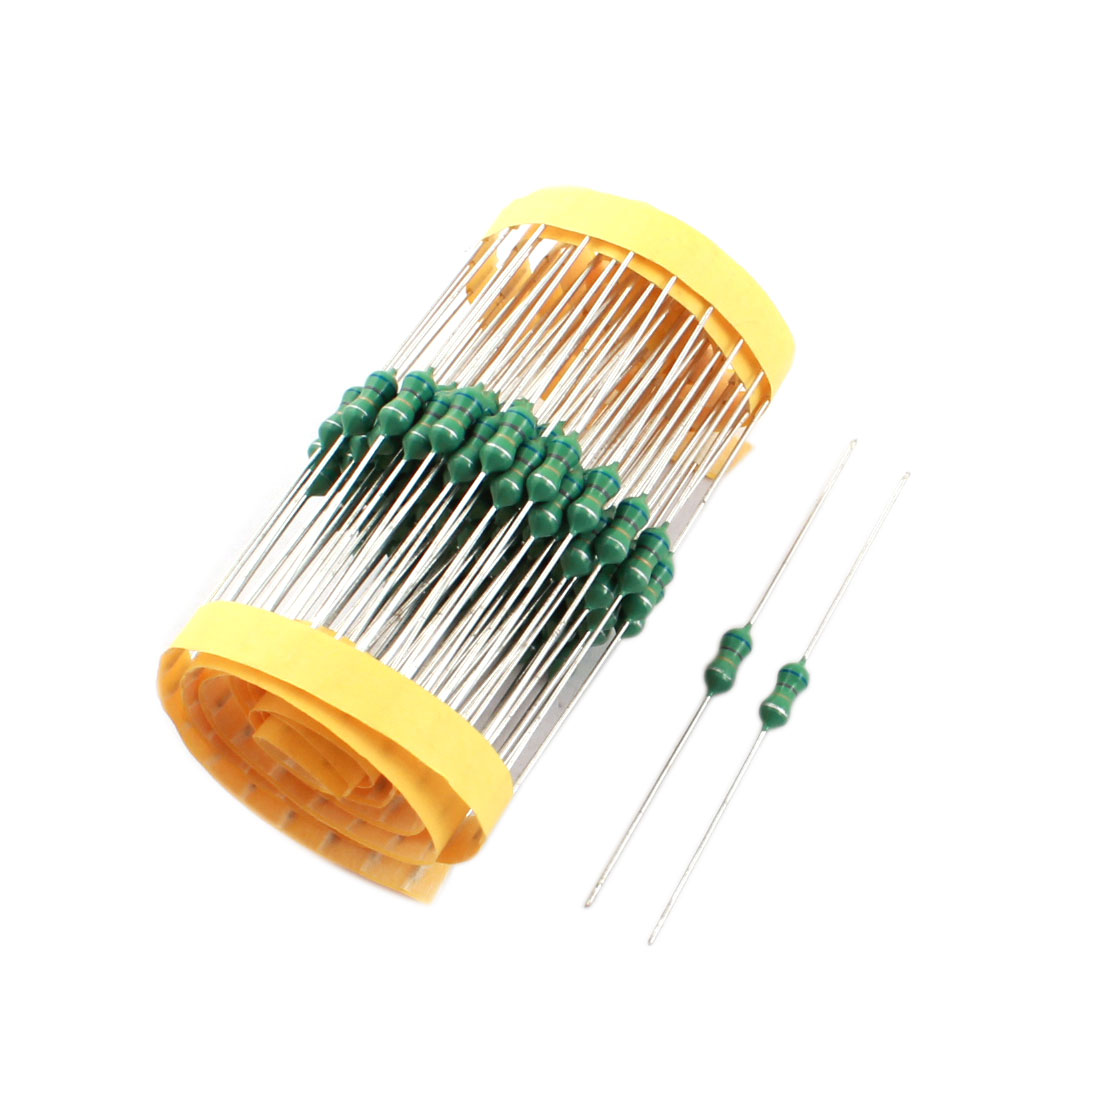 Motherboard 1/2W 6.8uH 10% 4x10mm 0410 Axial Color Ring Inductors 100pcs